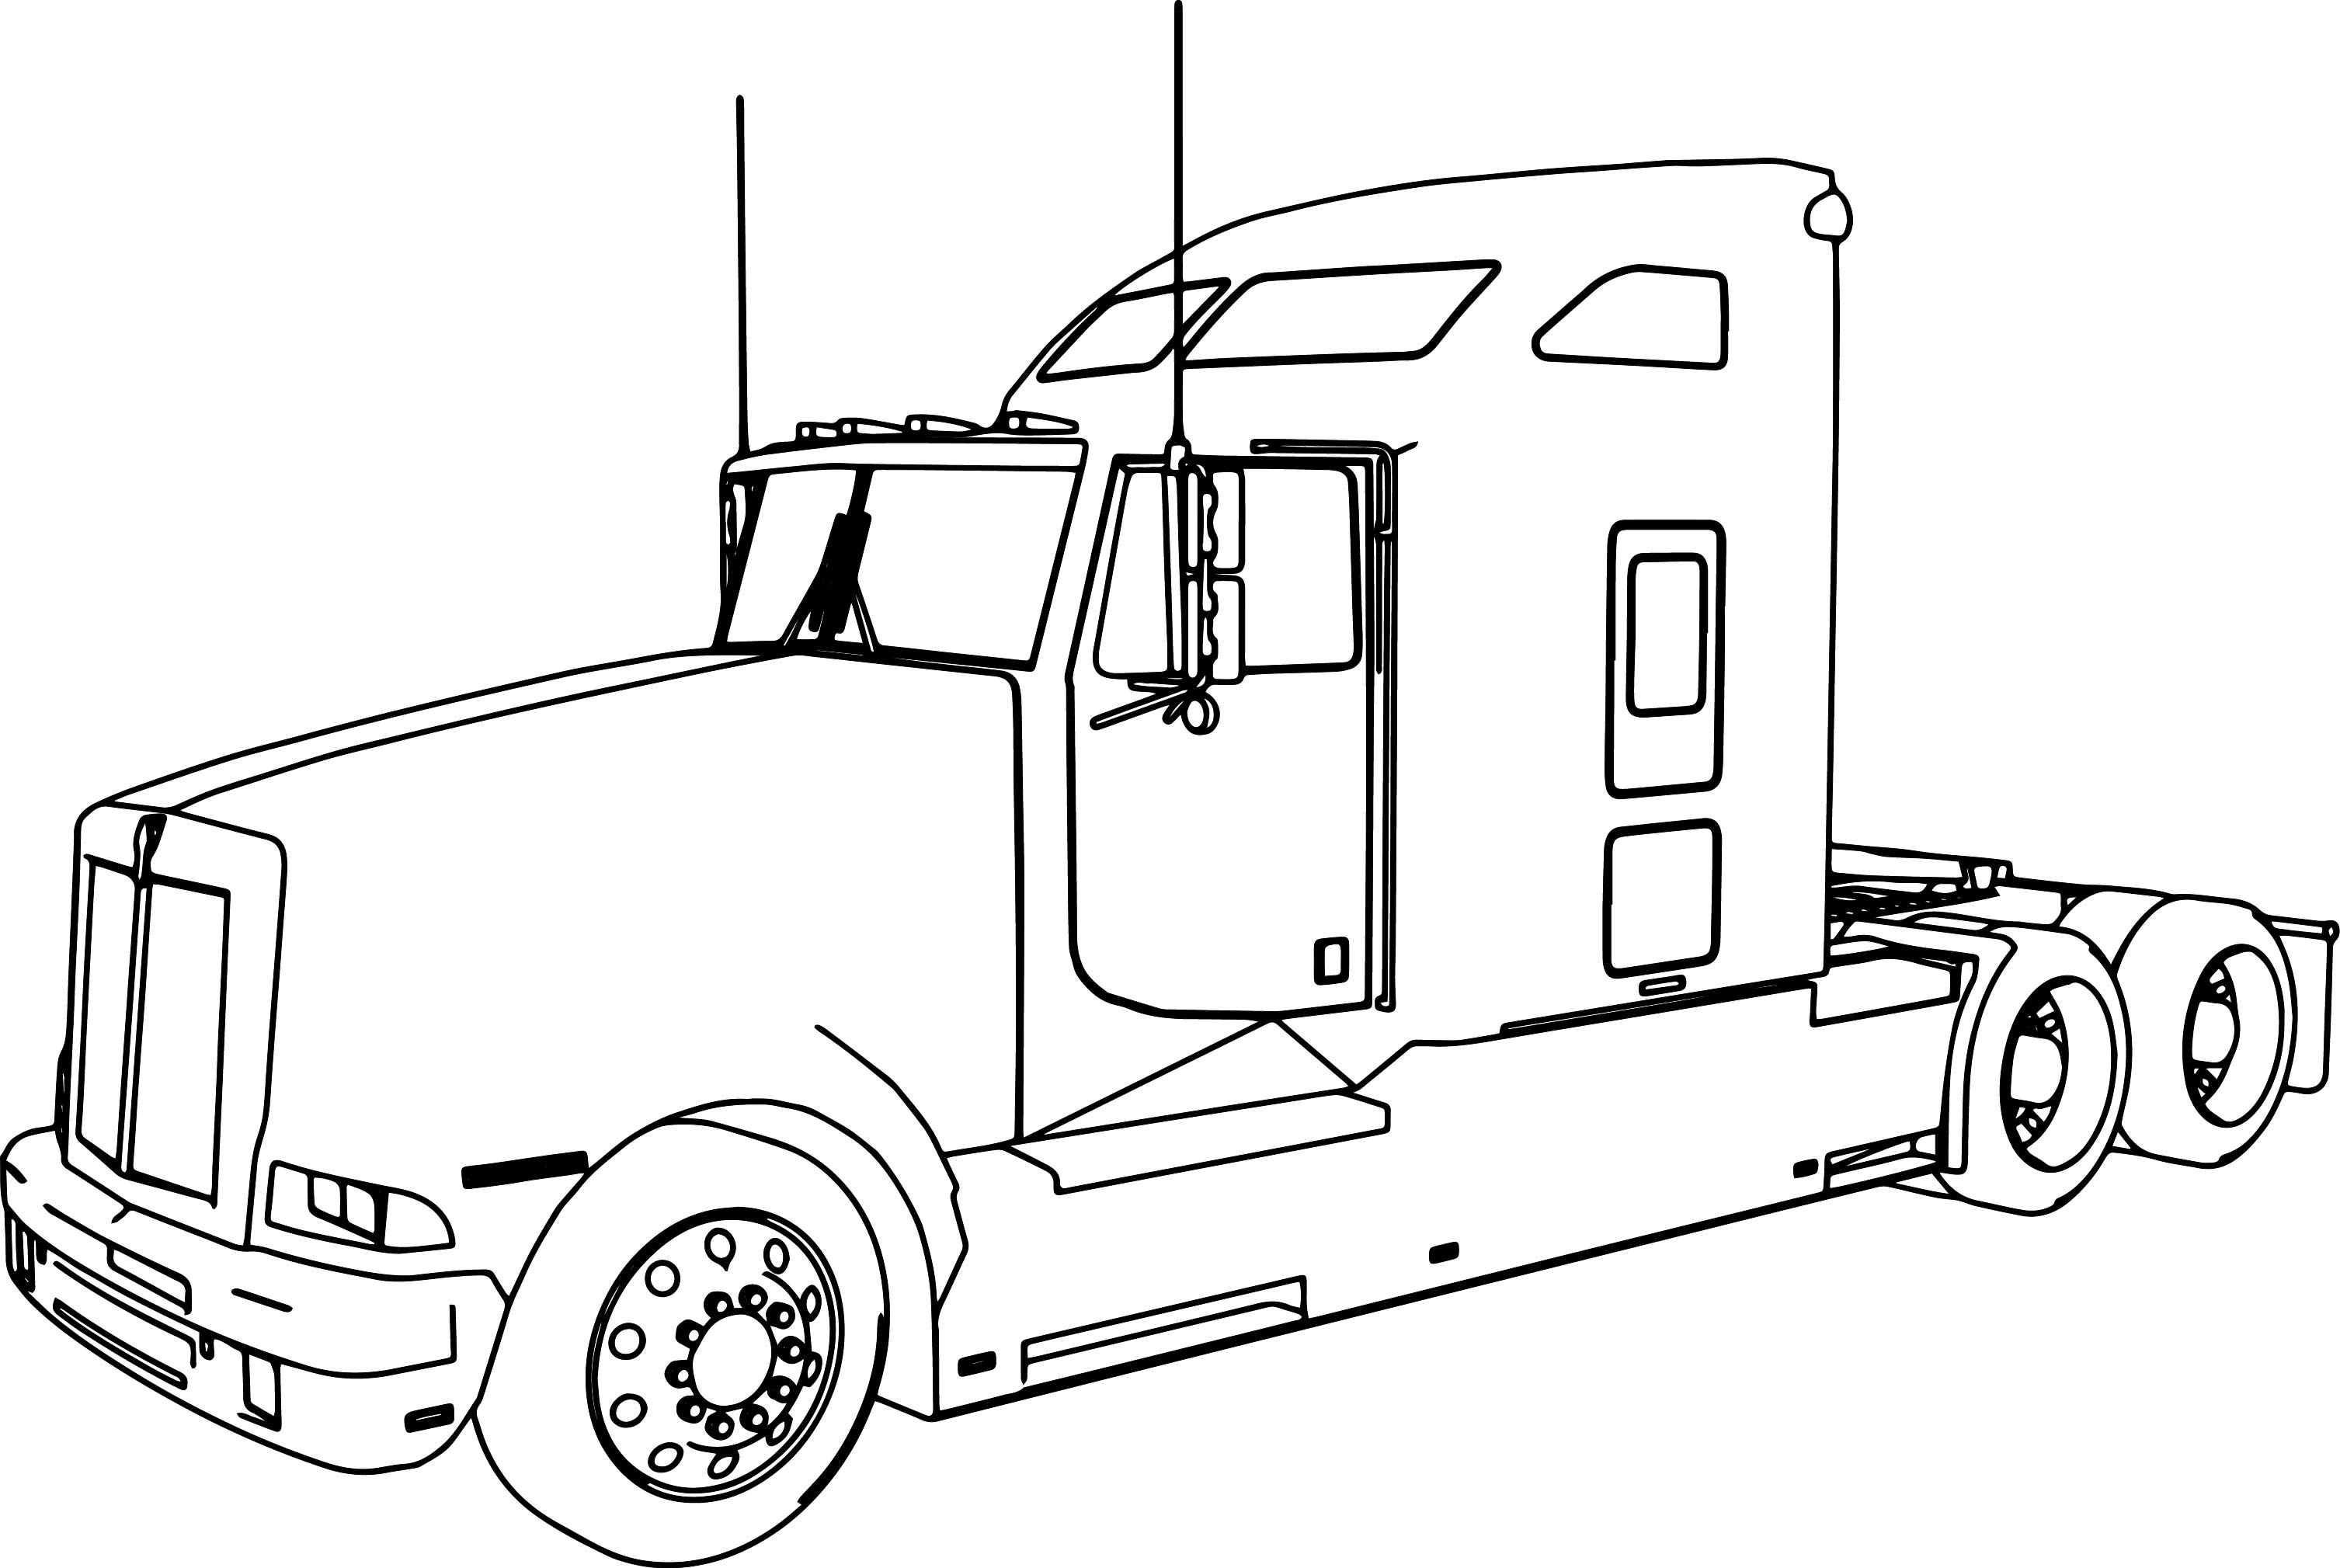 flatbed truck drawing at getdrawings com